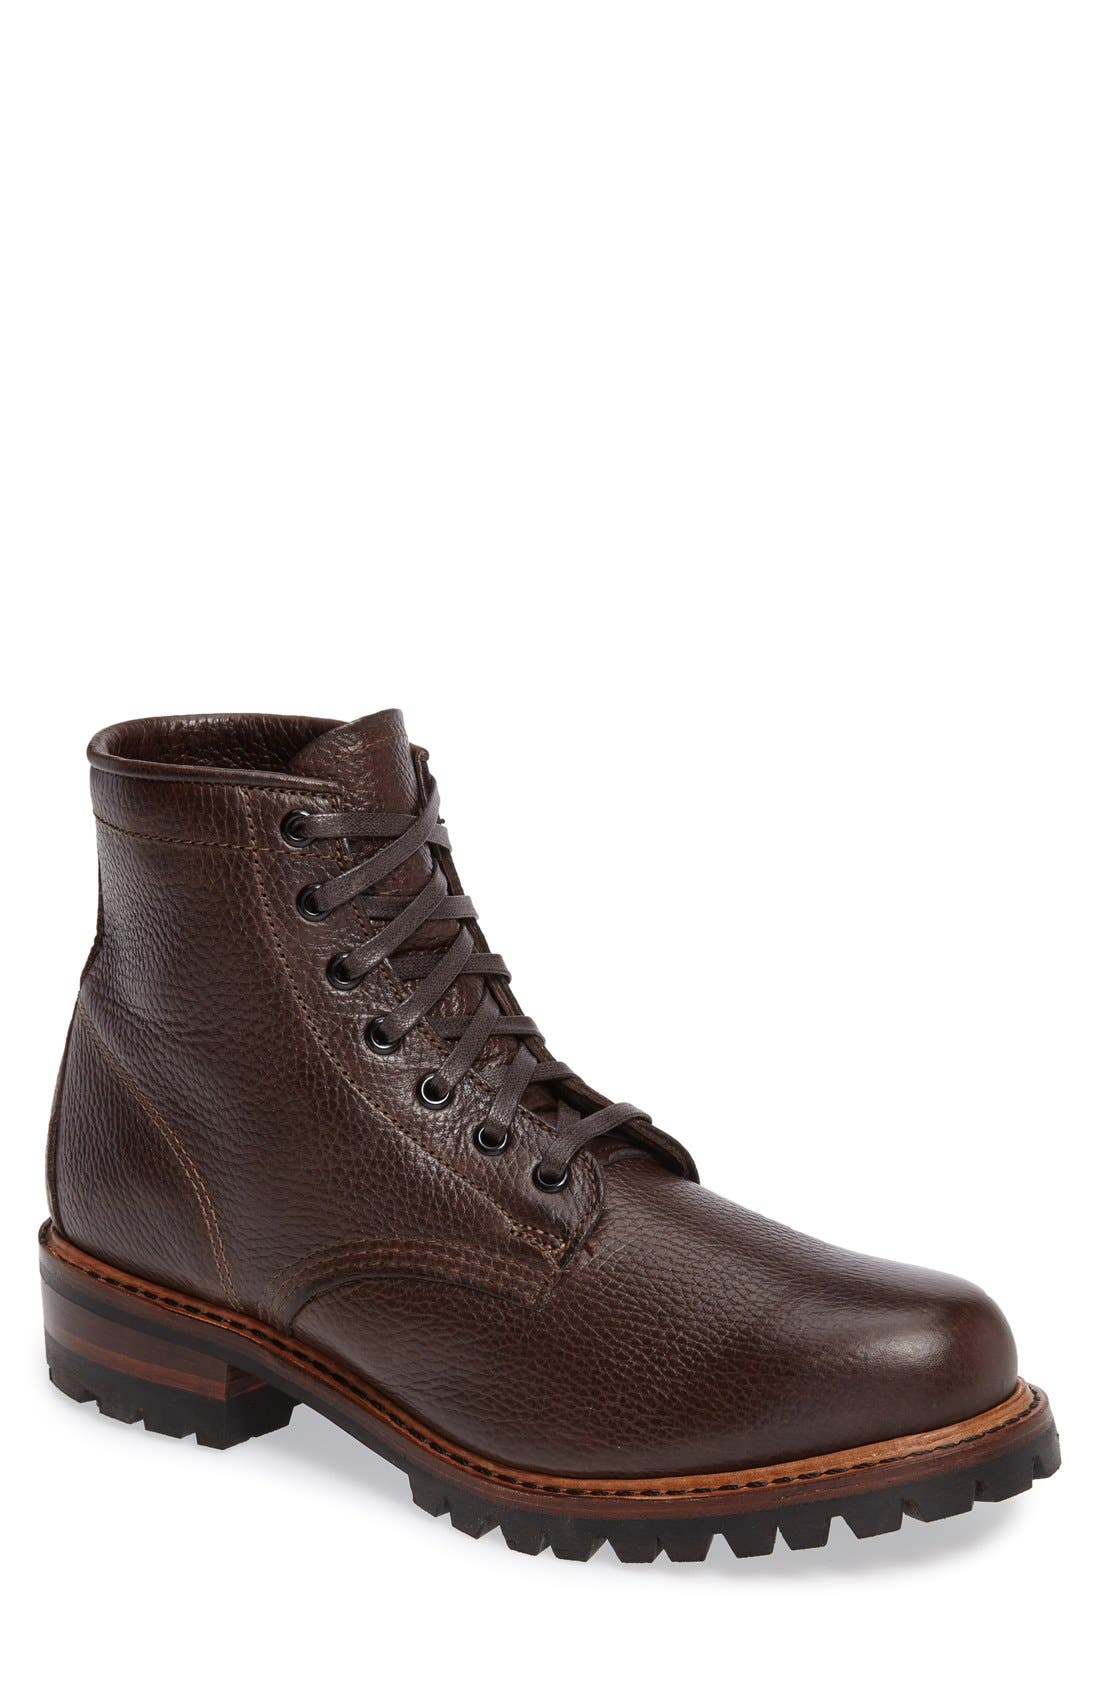 frye shoes for men 11 eee boots for women